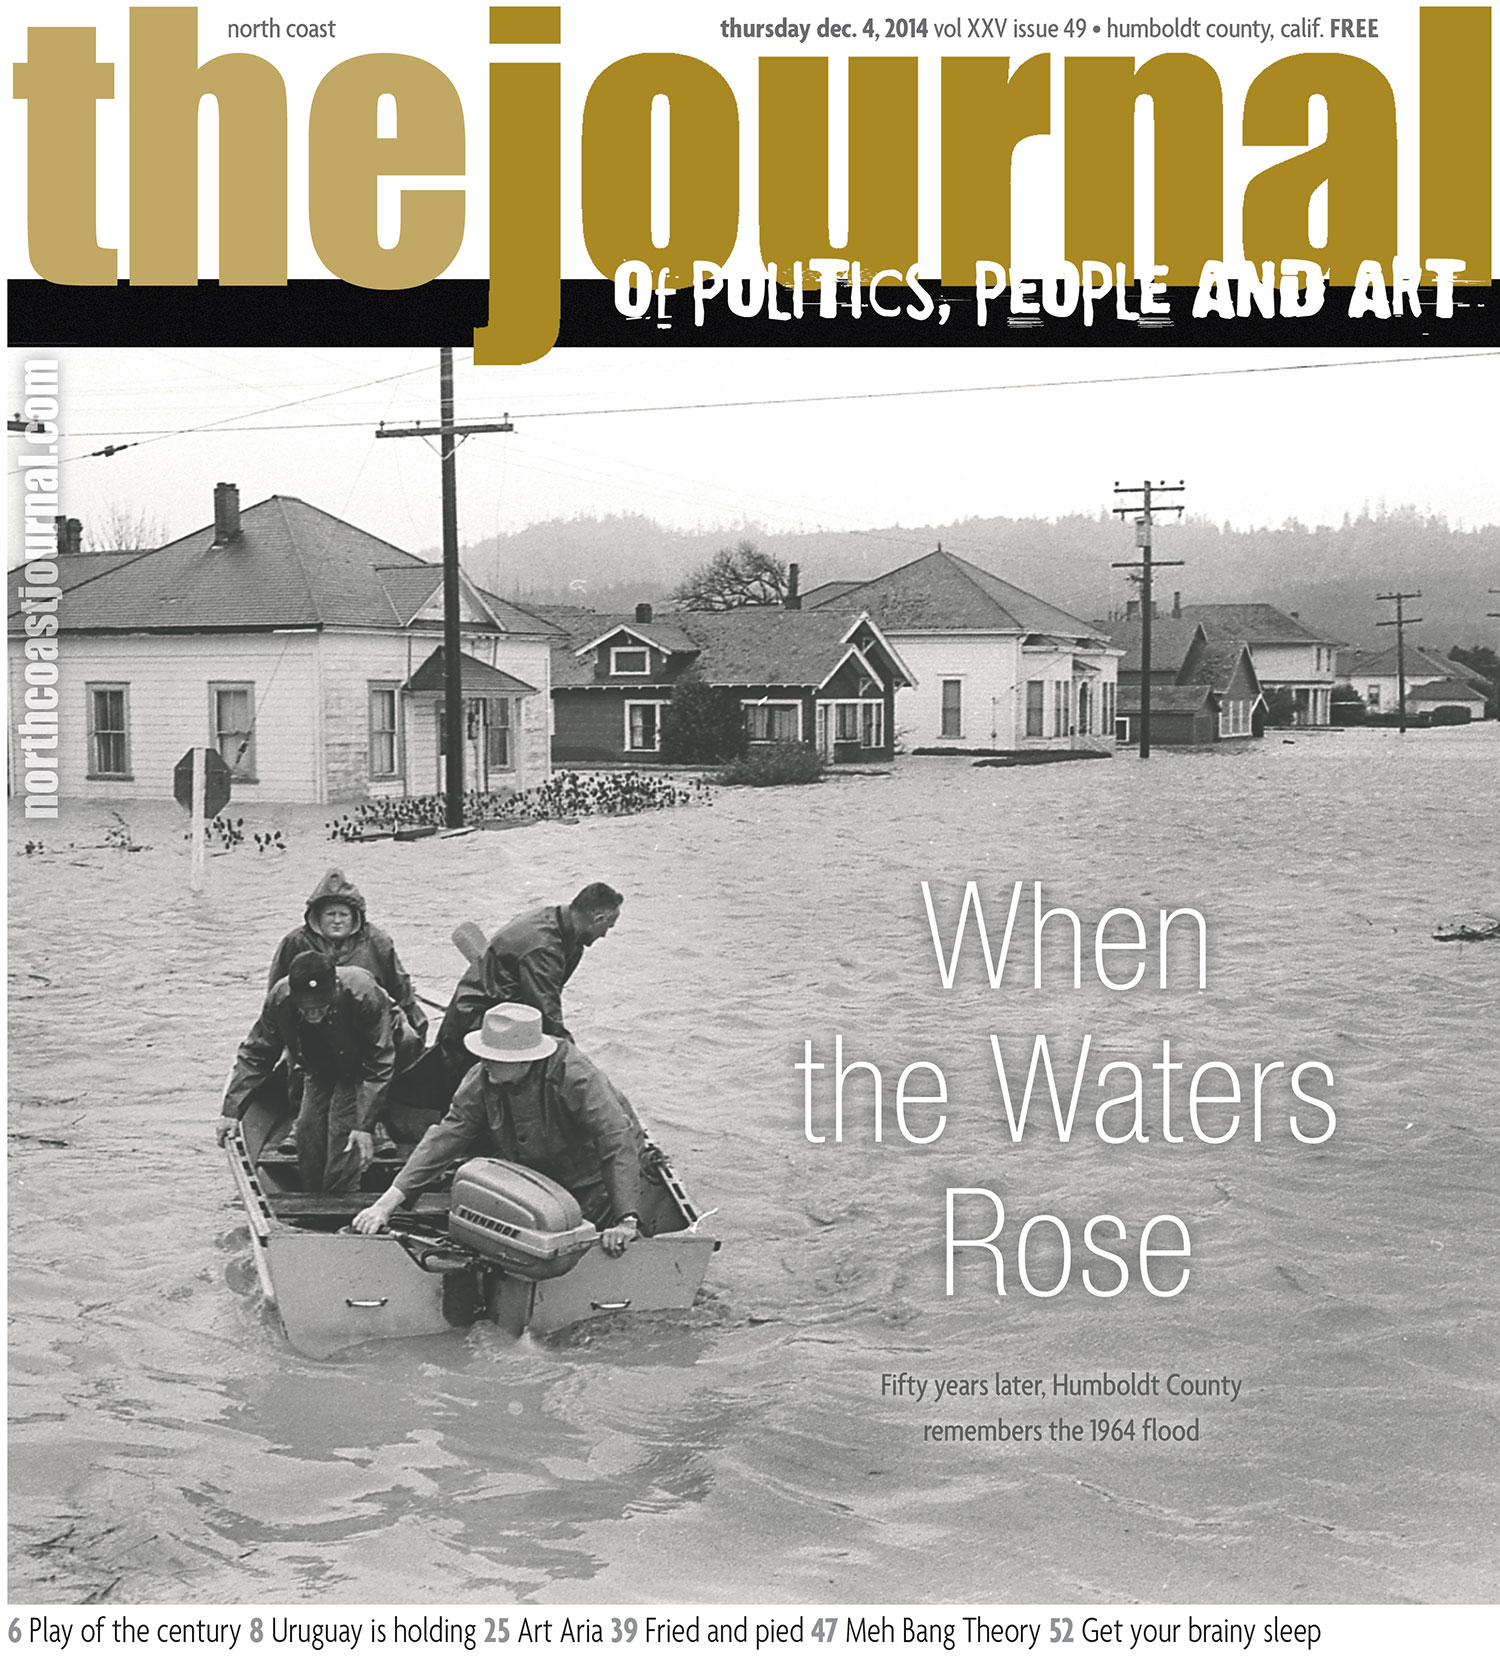 Eureka and Humboldt County (CA) (Images of America) 1964 flood humboldt county pictures